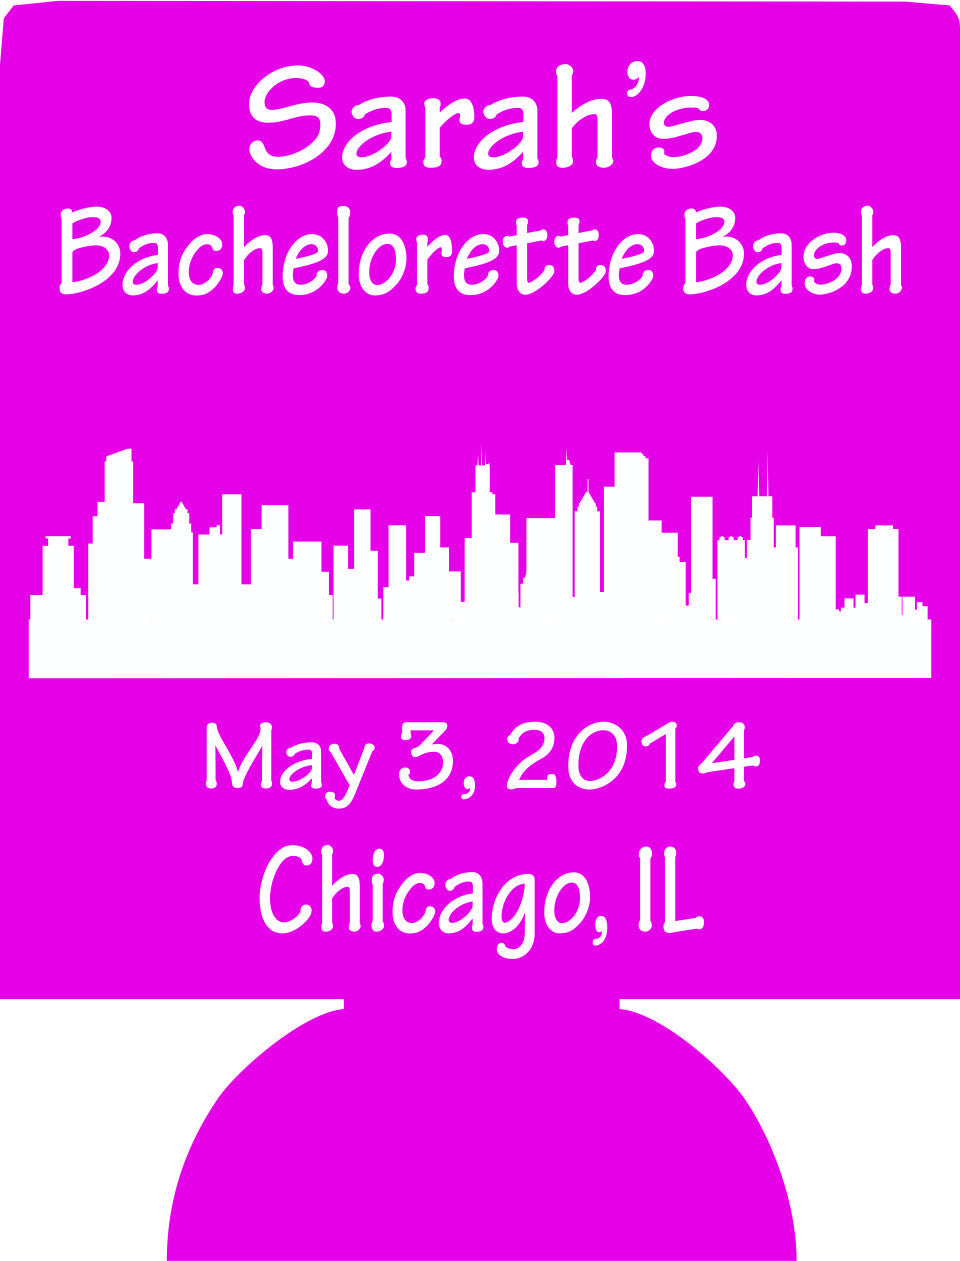 Chicago IL Bachelorette koozie skyline clipart personalized